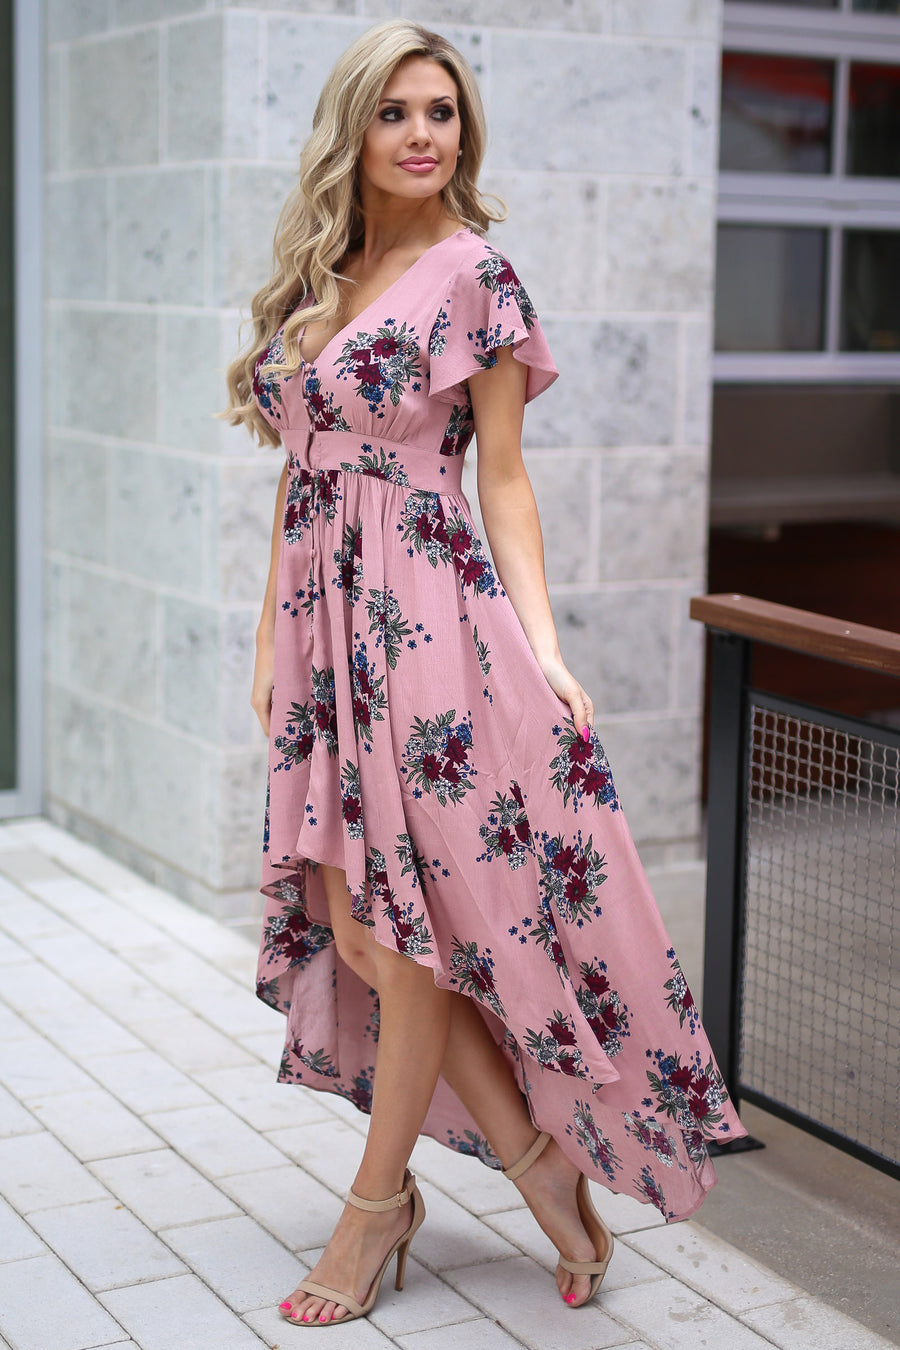 Nantucket Maxi Dress - Blush floral print high-low dress, front, Closet Candy Boutique